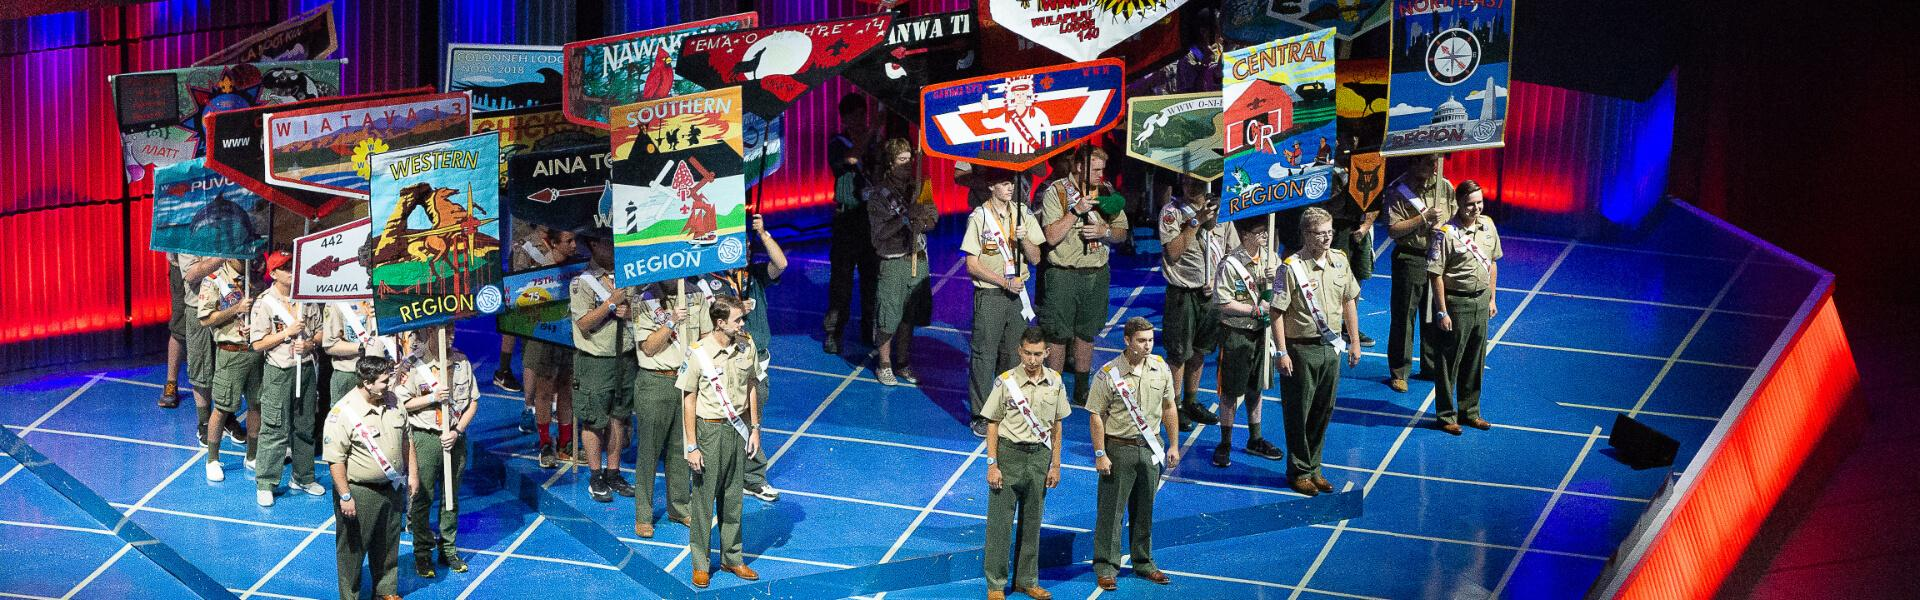 Order of the Arrow - Northern Lights Council | Boy Scouts of America